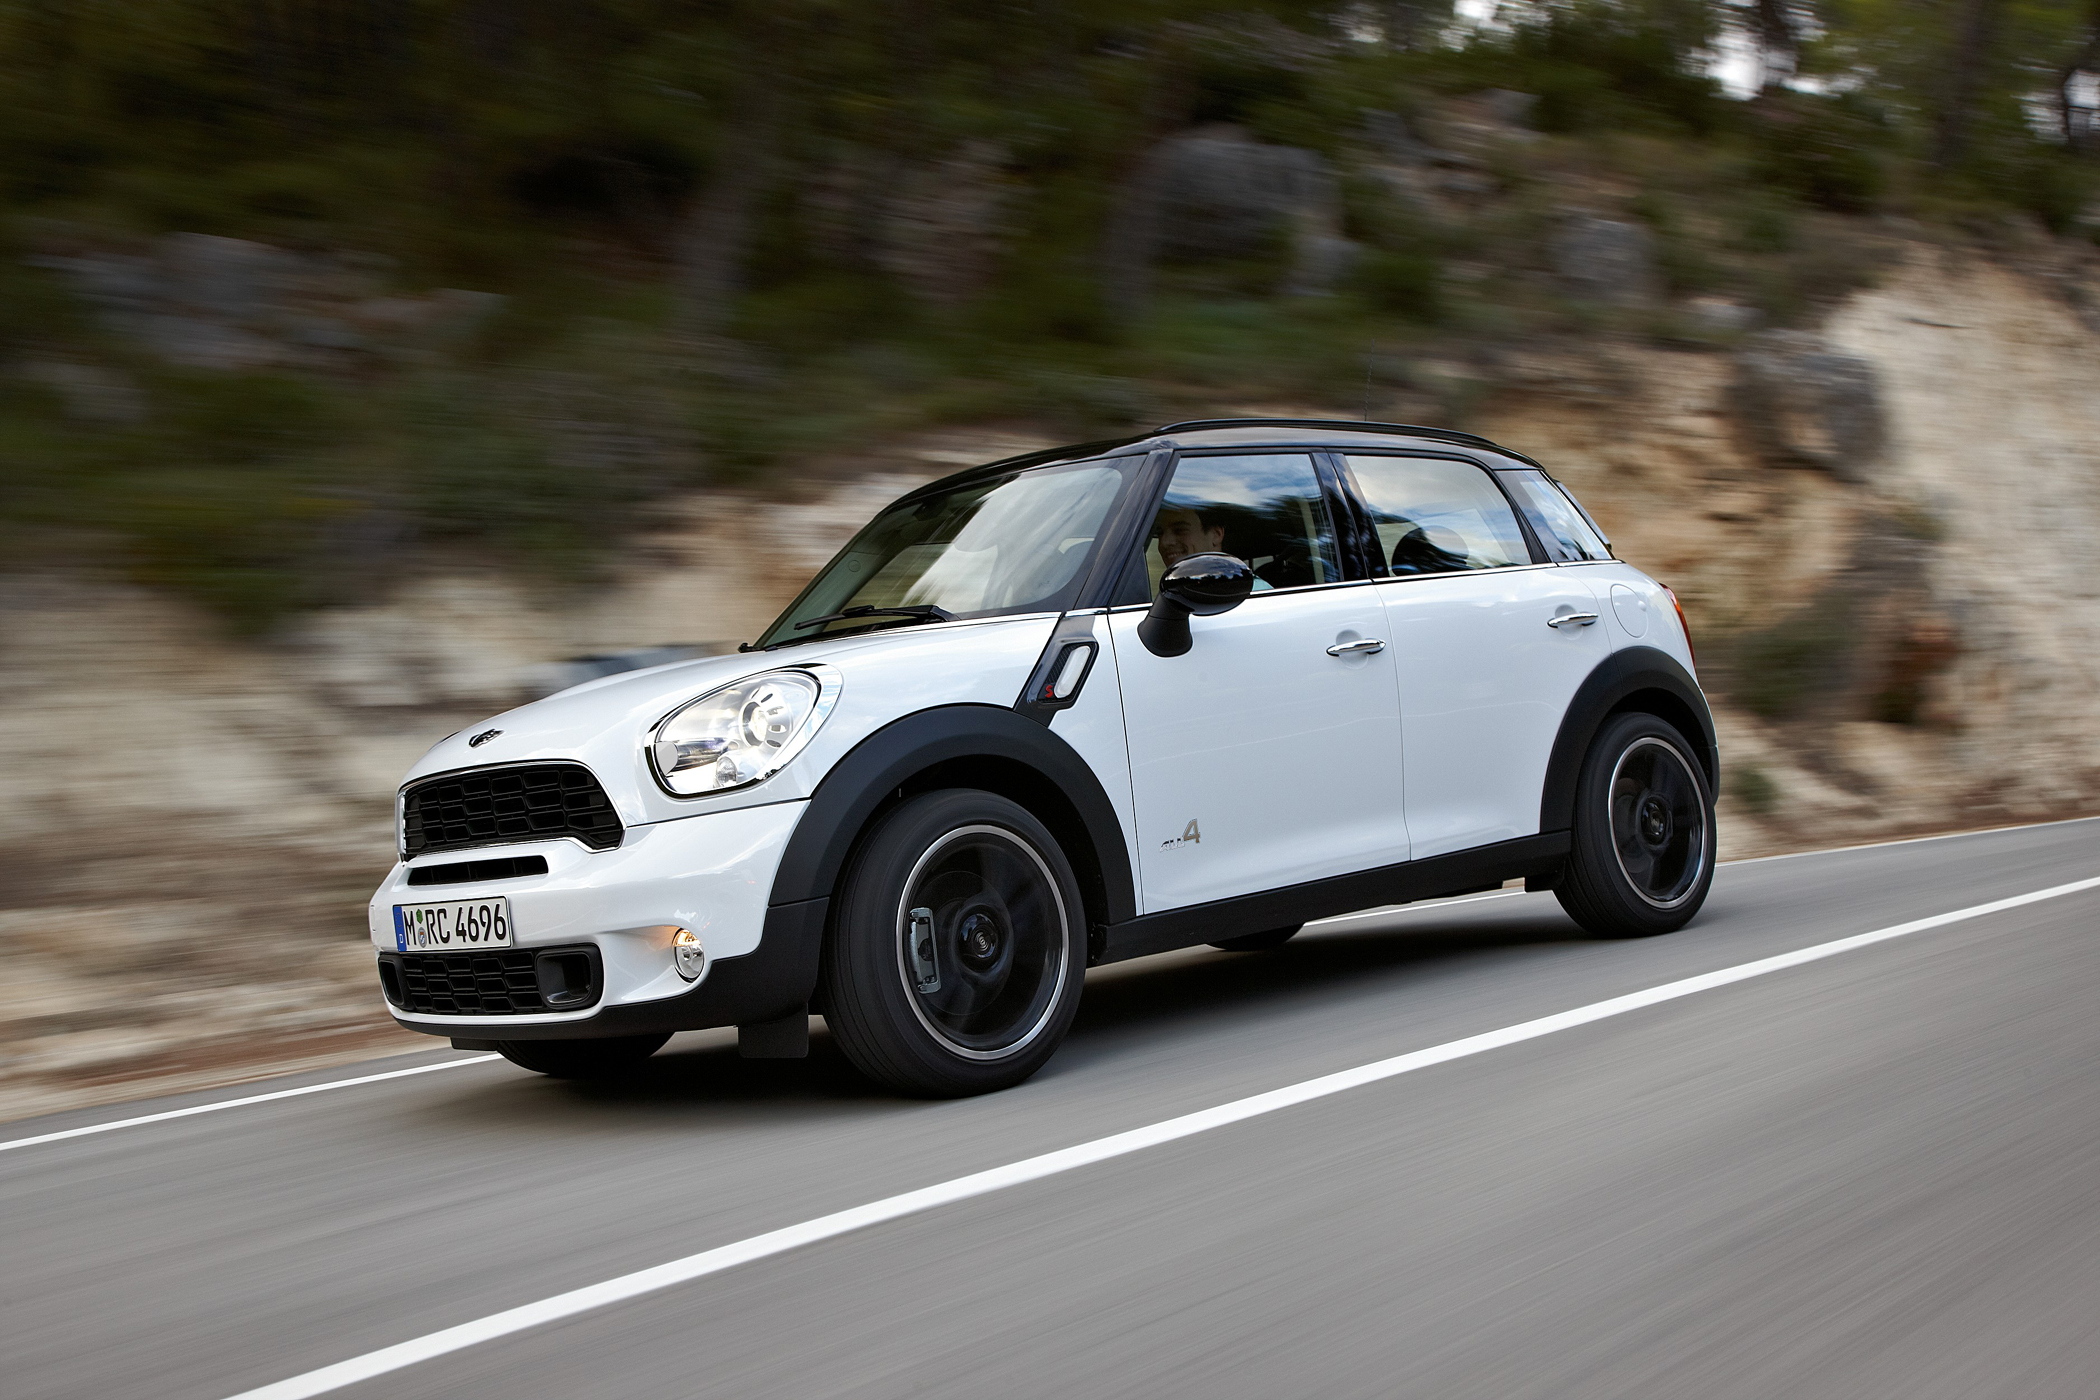 The Mini Cooper Countryman Is Both Longer And Taller Than Its Sibling Models It Provides S Iconic Go Kart Driving Sensation But With Additional E